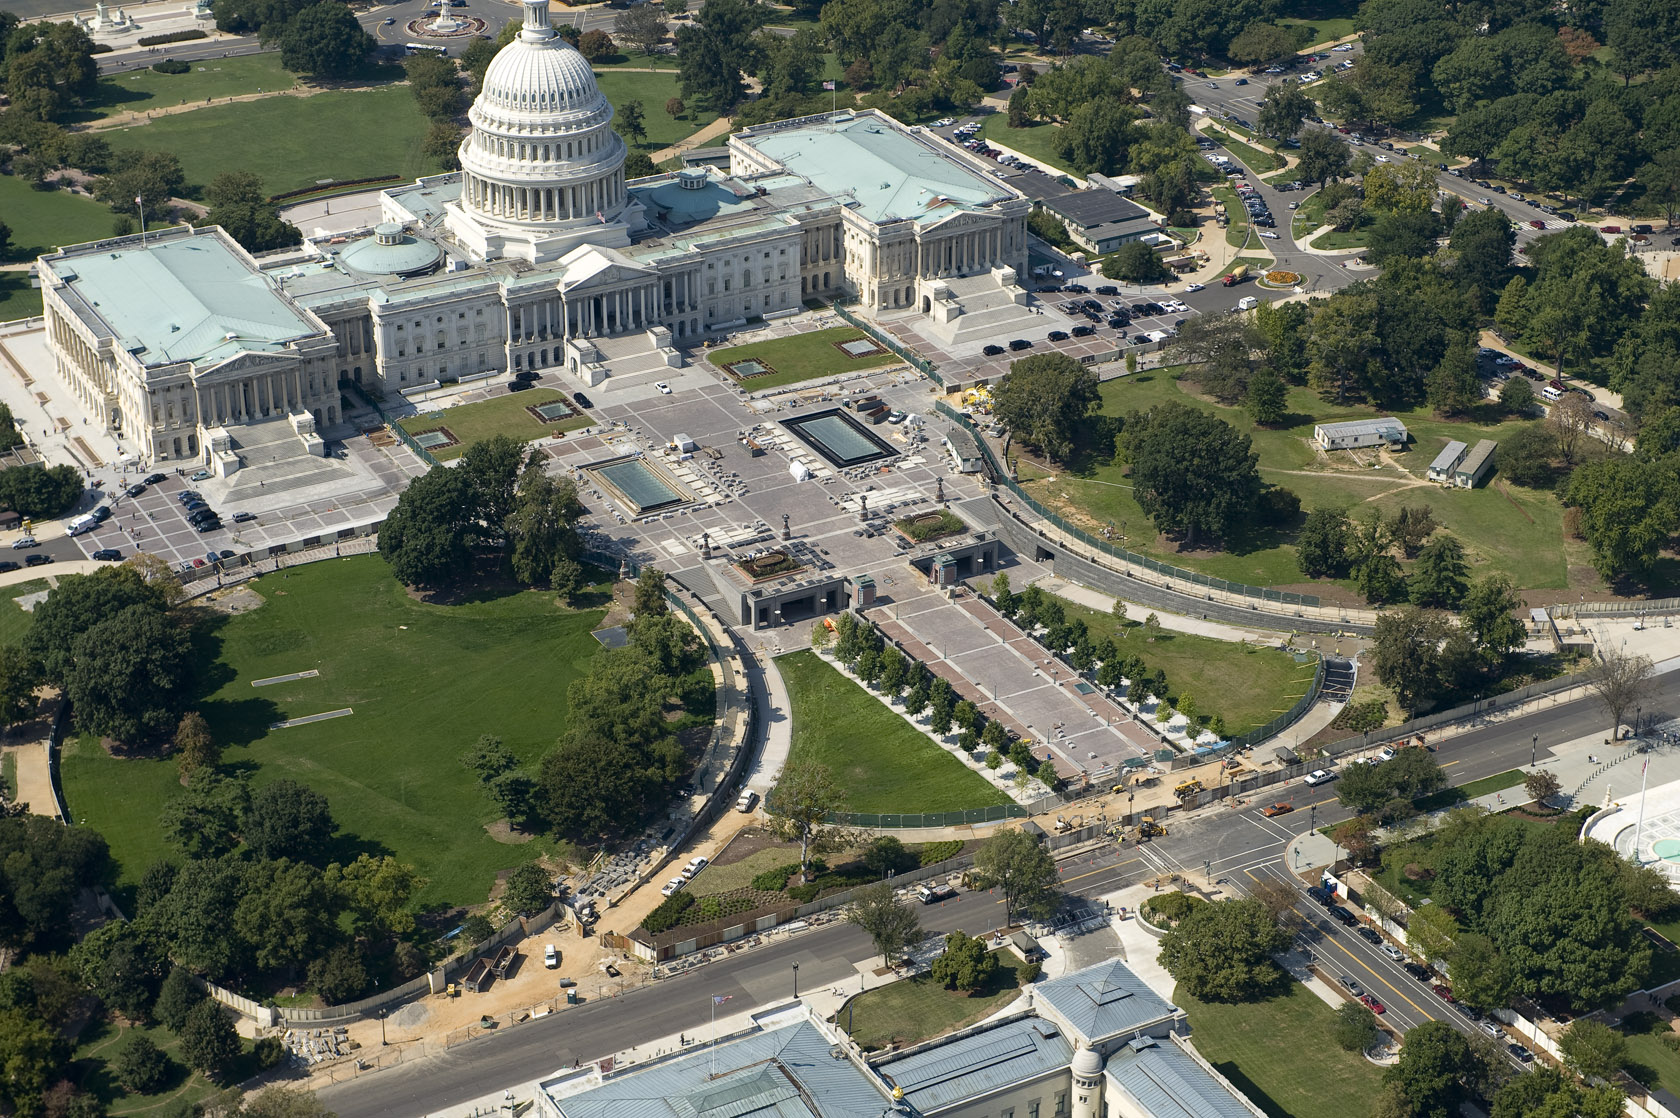 File:Capitol Visitor Center Plaza.jpg - Wikimedia Commons